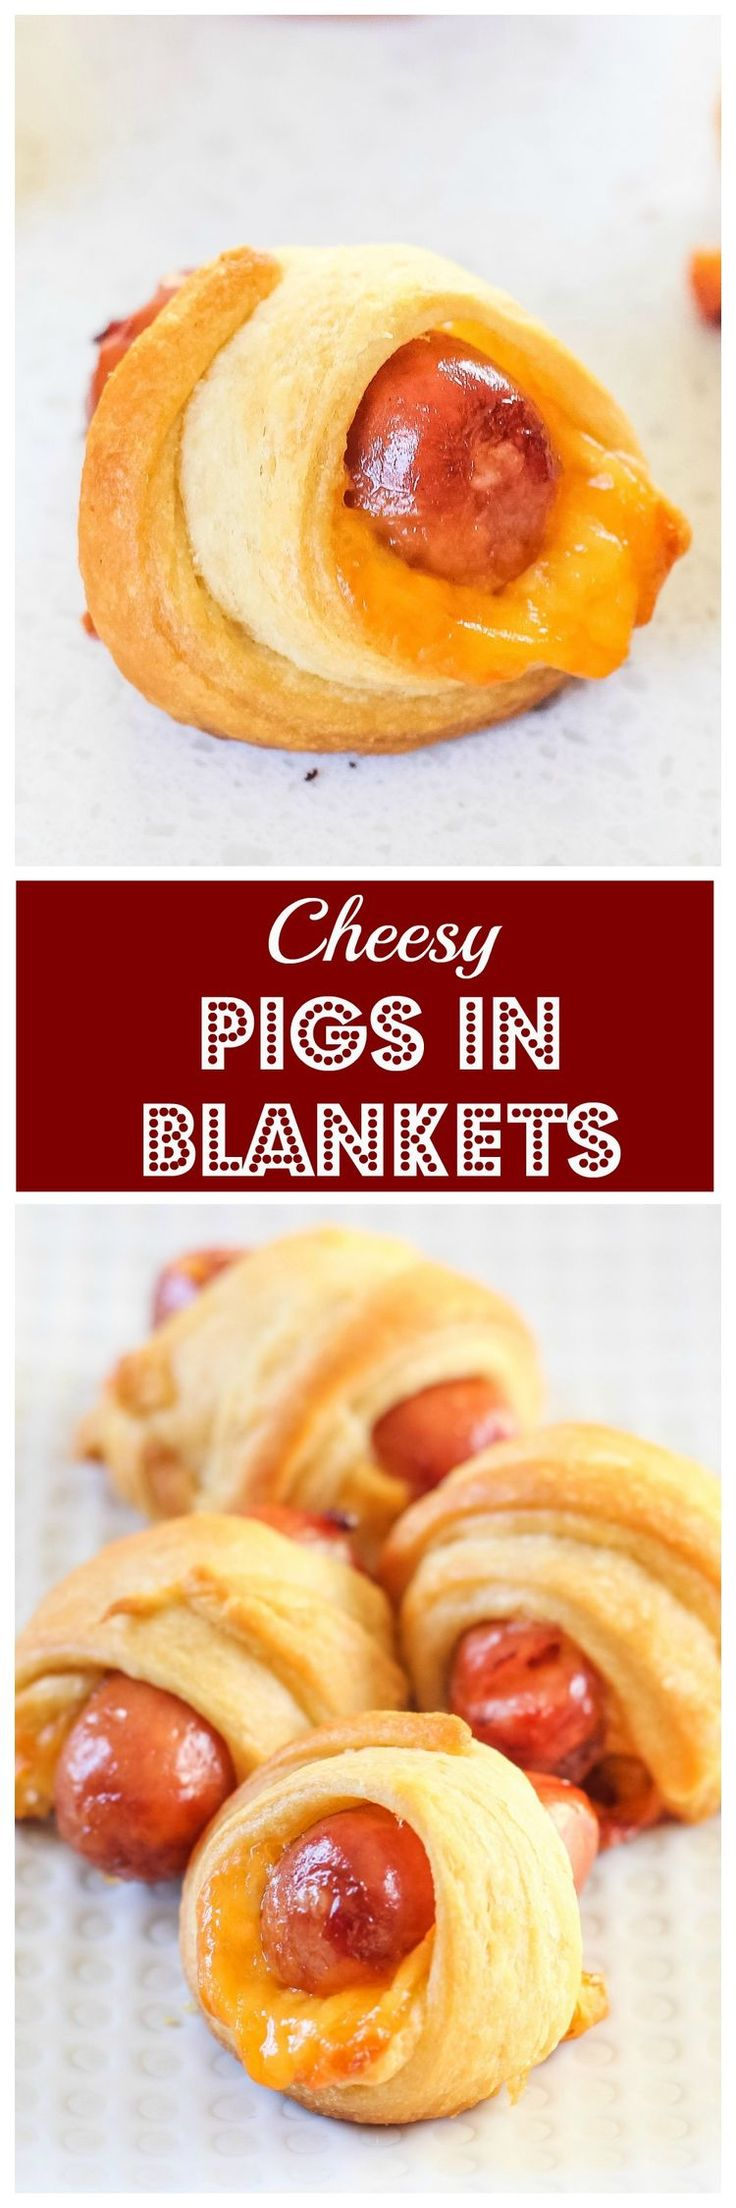 Cheesy Pigs in Blankets - The ultimate football snack!